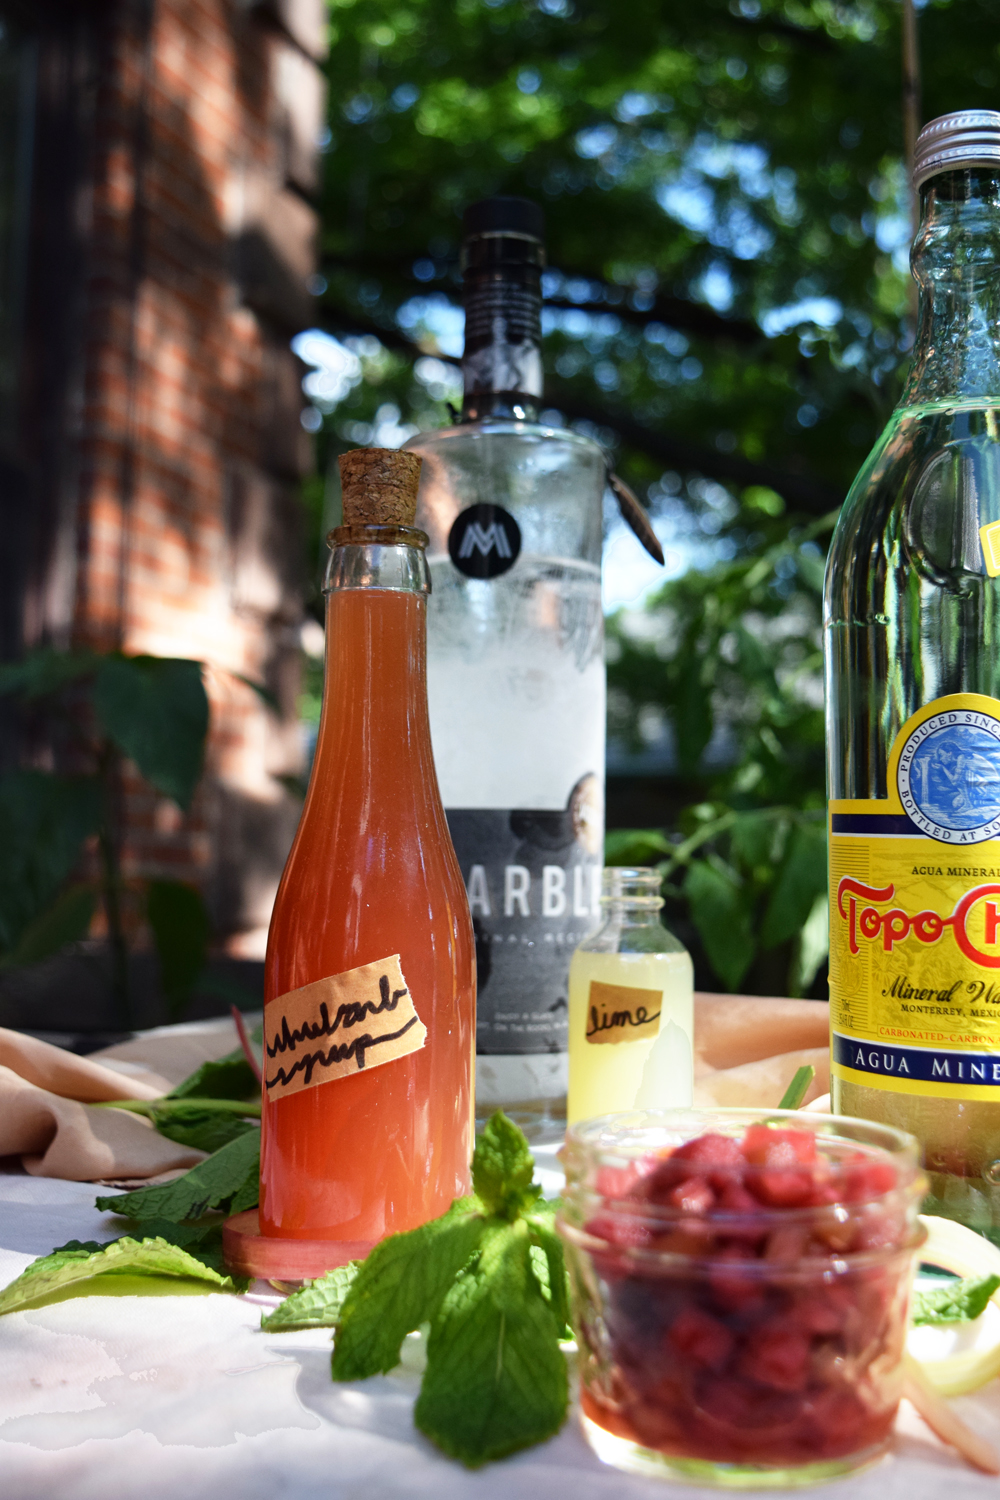 ingredients for rhubarb cocktail with Topo Chico and Marble Distilling Co sustainable vodka